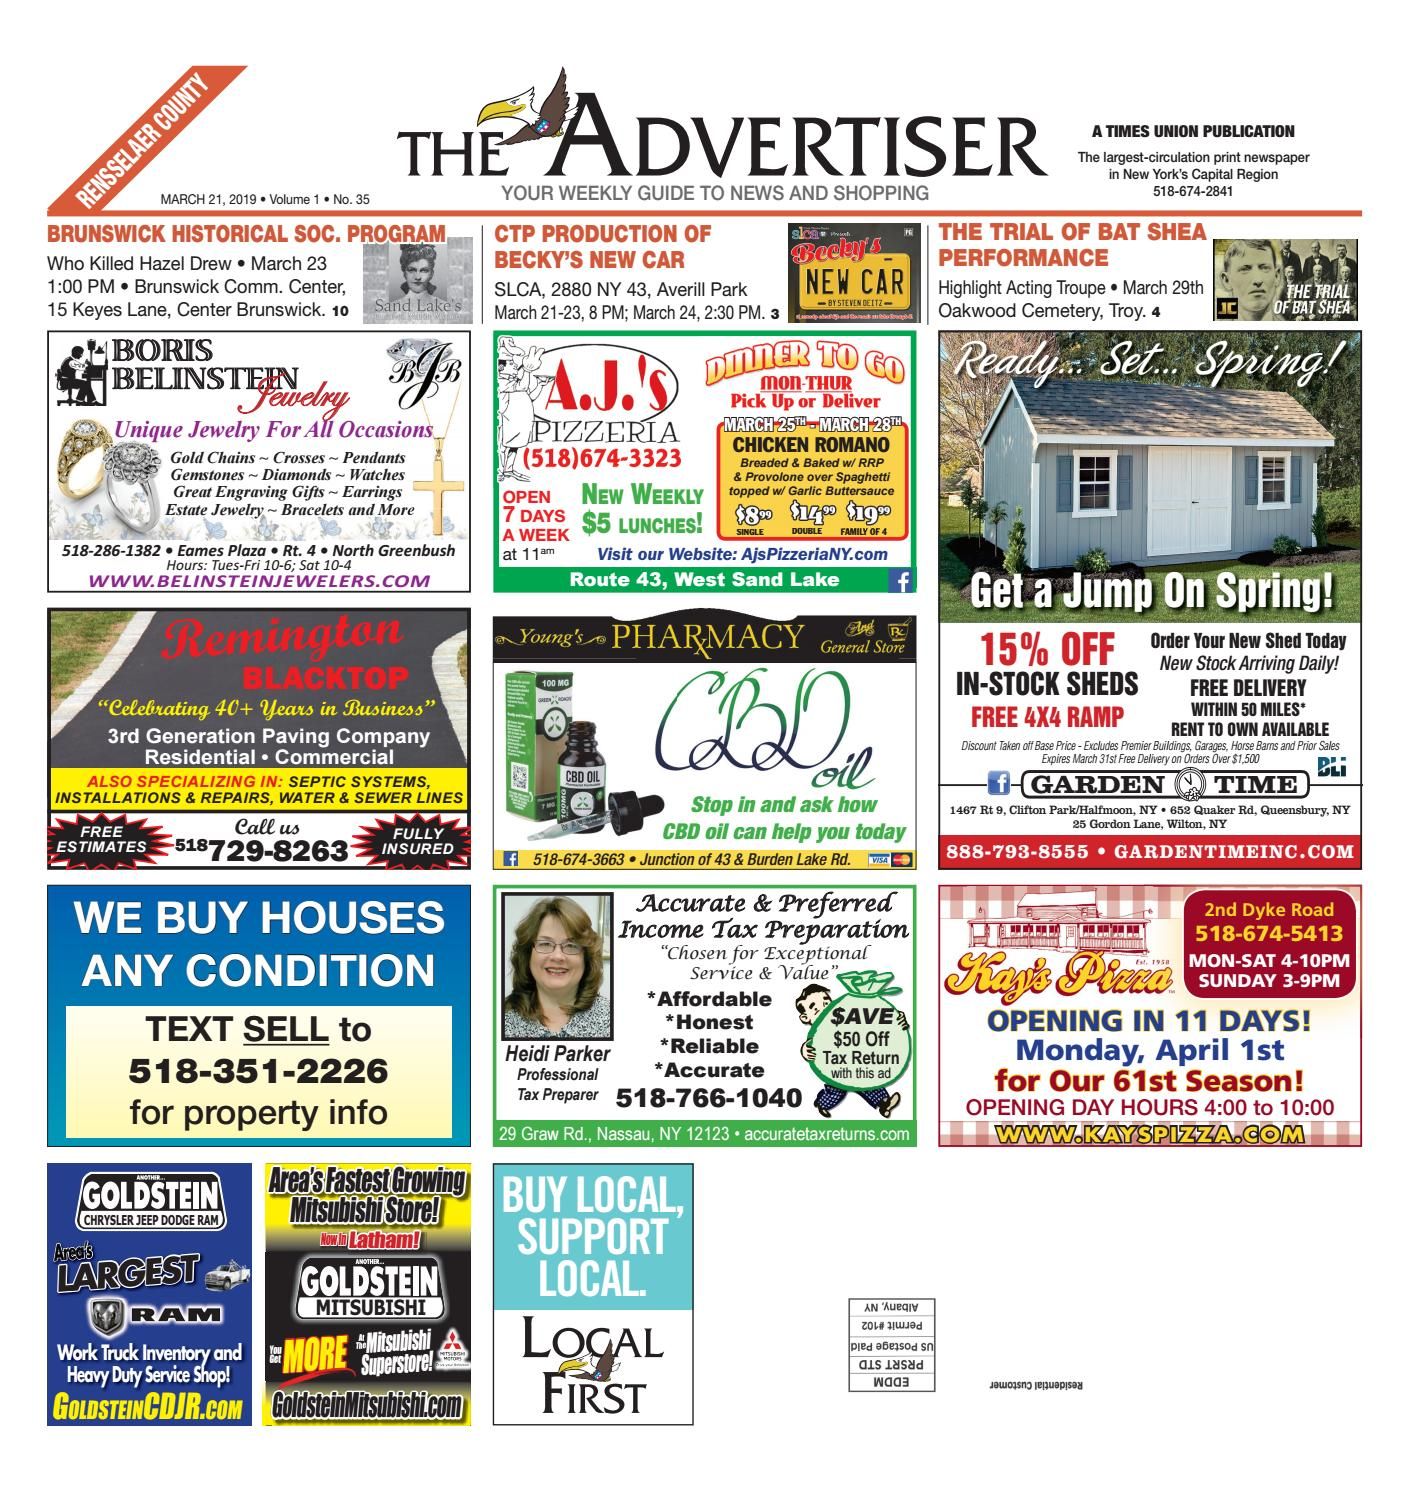 71928c37 Local First The Advertiser 032119 by Capital Region Weekly Newspapers -  issuu